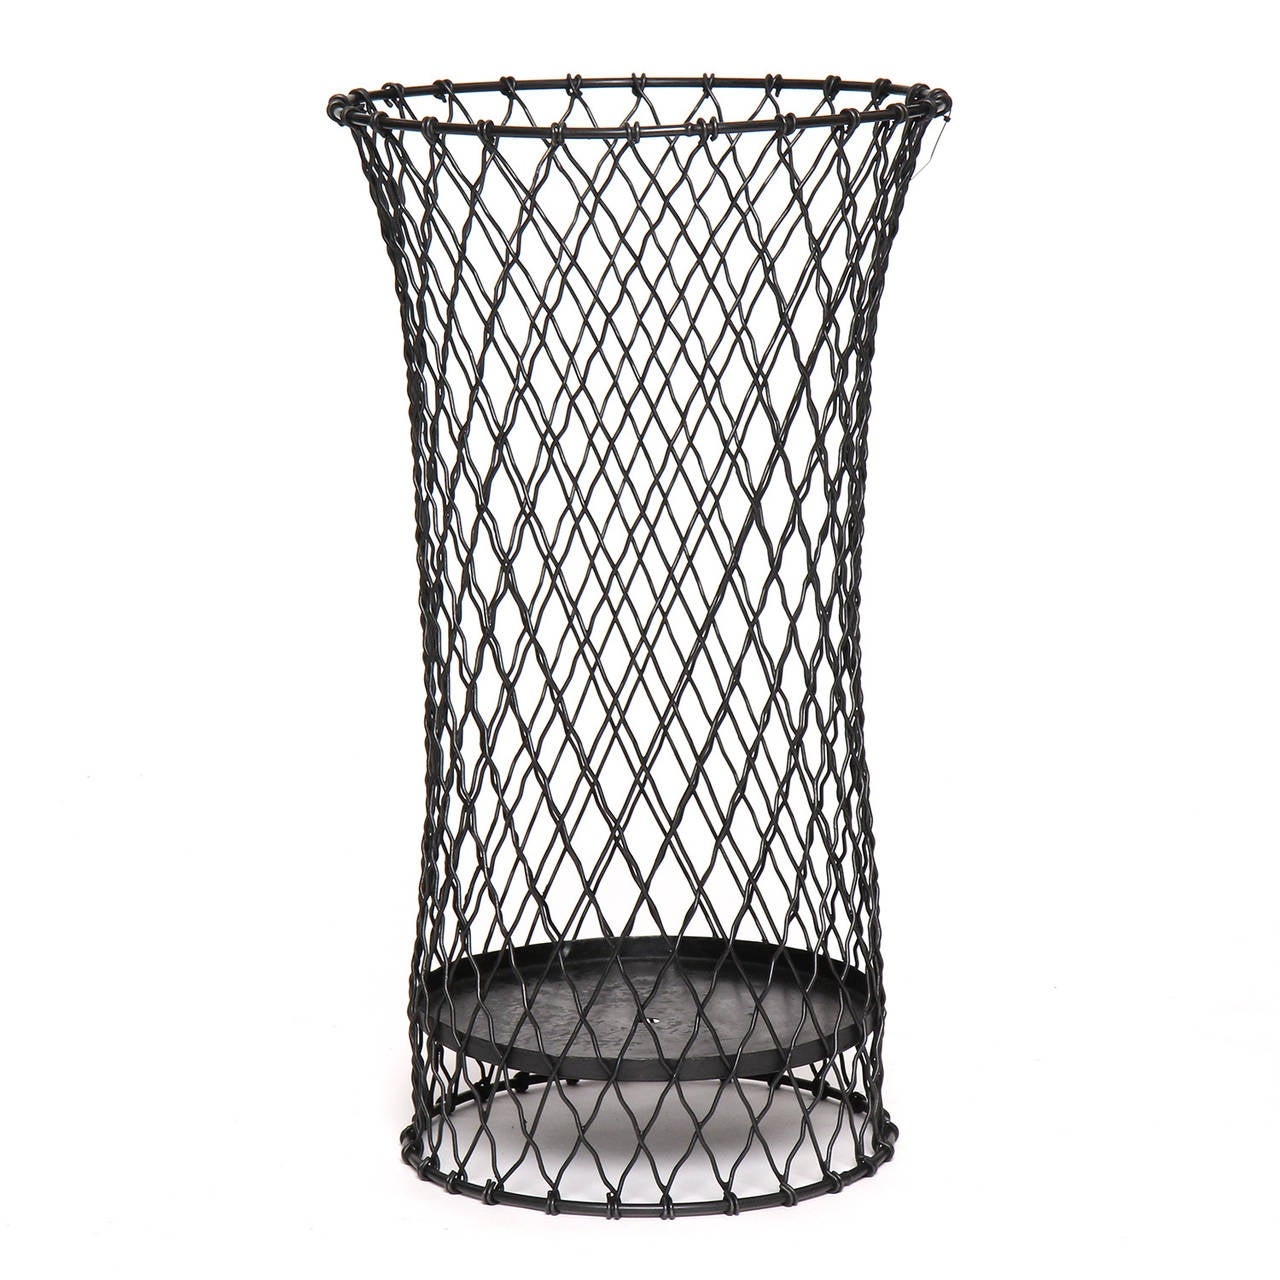 Decorative Metal Waste Baskets Industrial Wire Waste Basket At 1stdibs